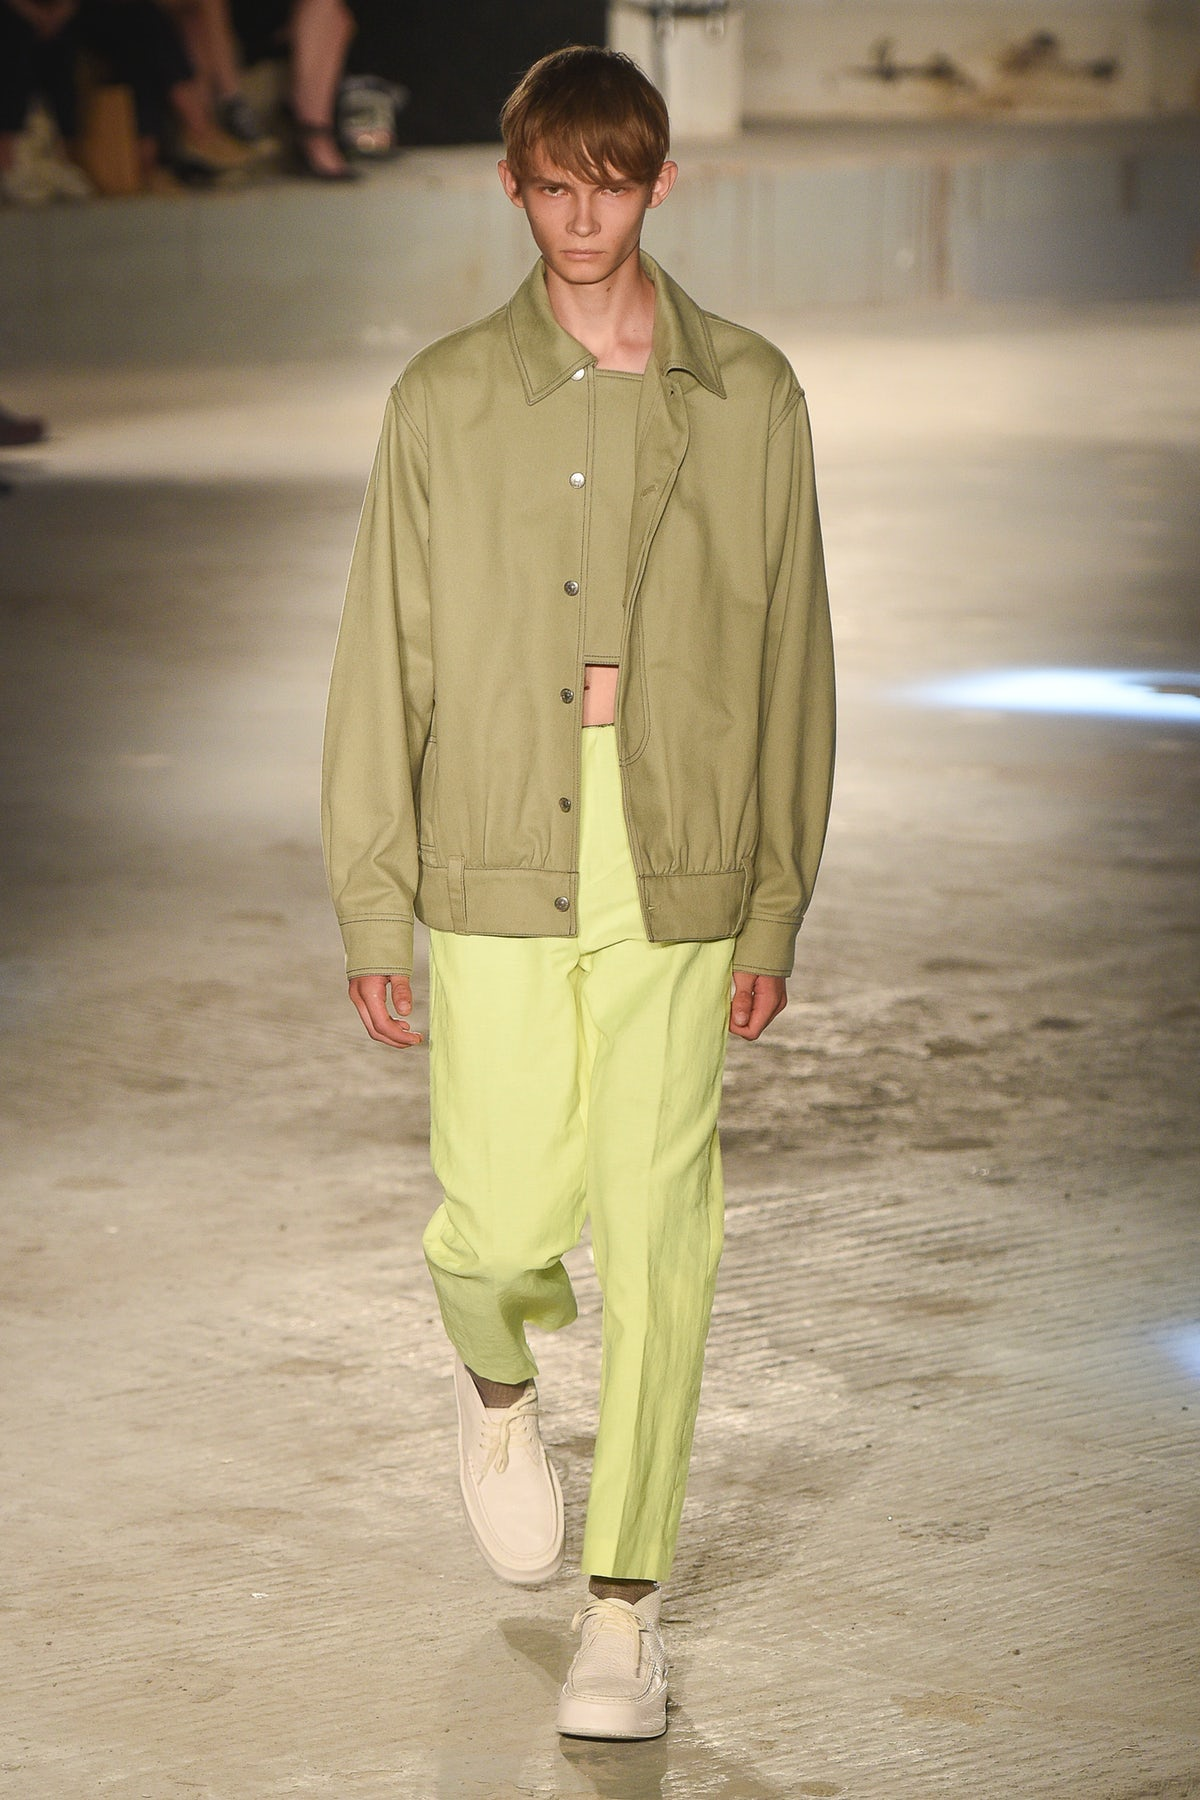 The Morphing of Garments at Acne Studios